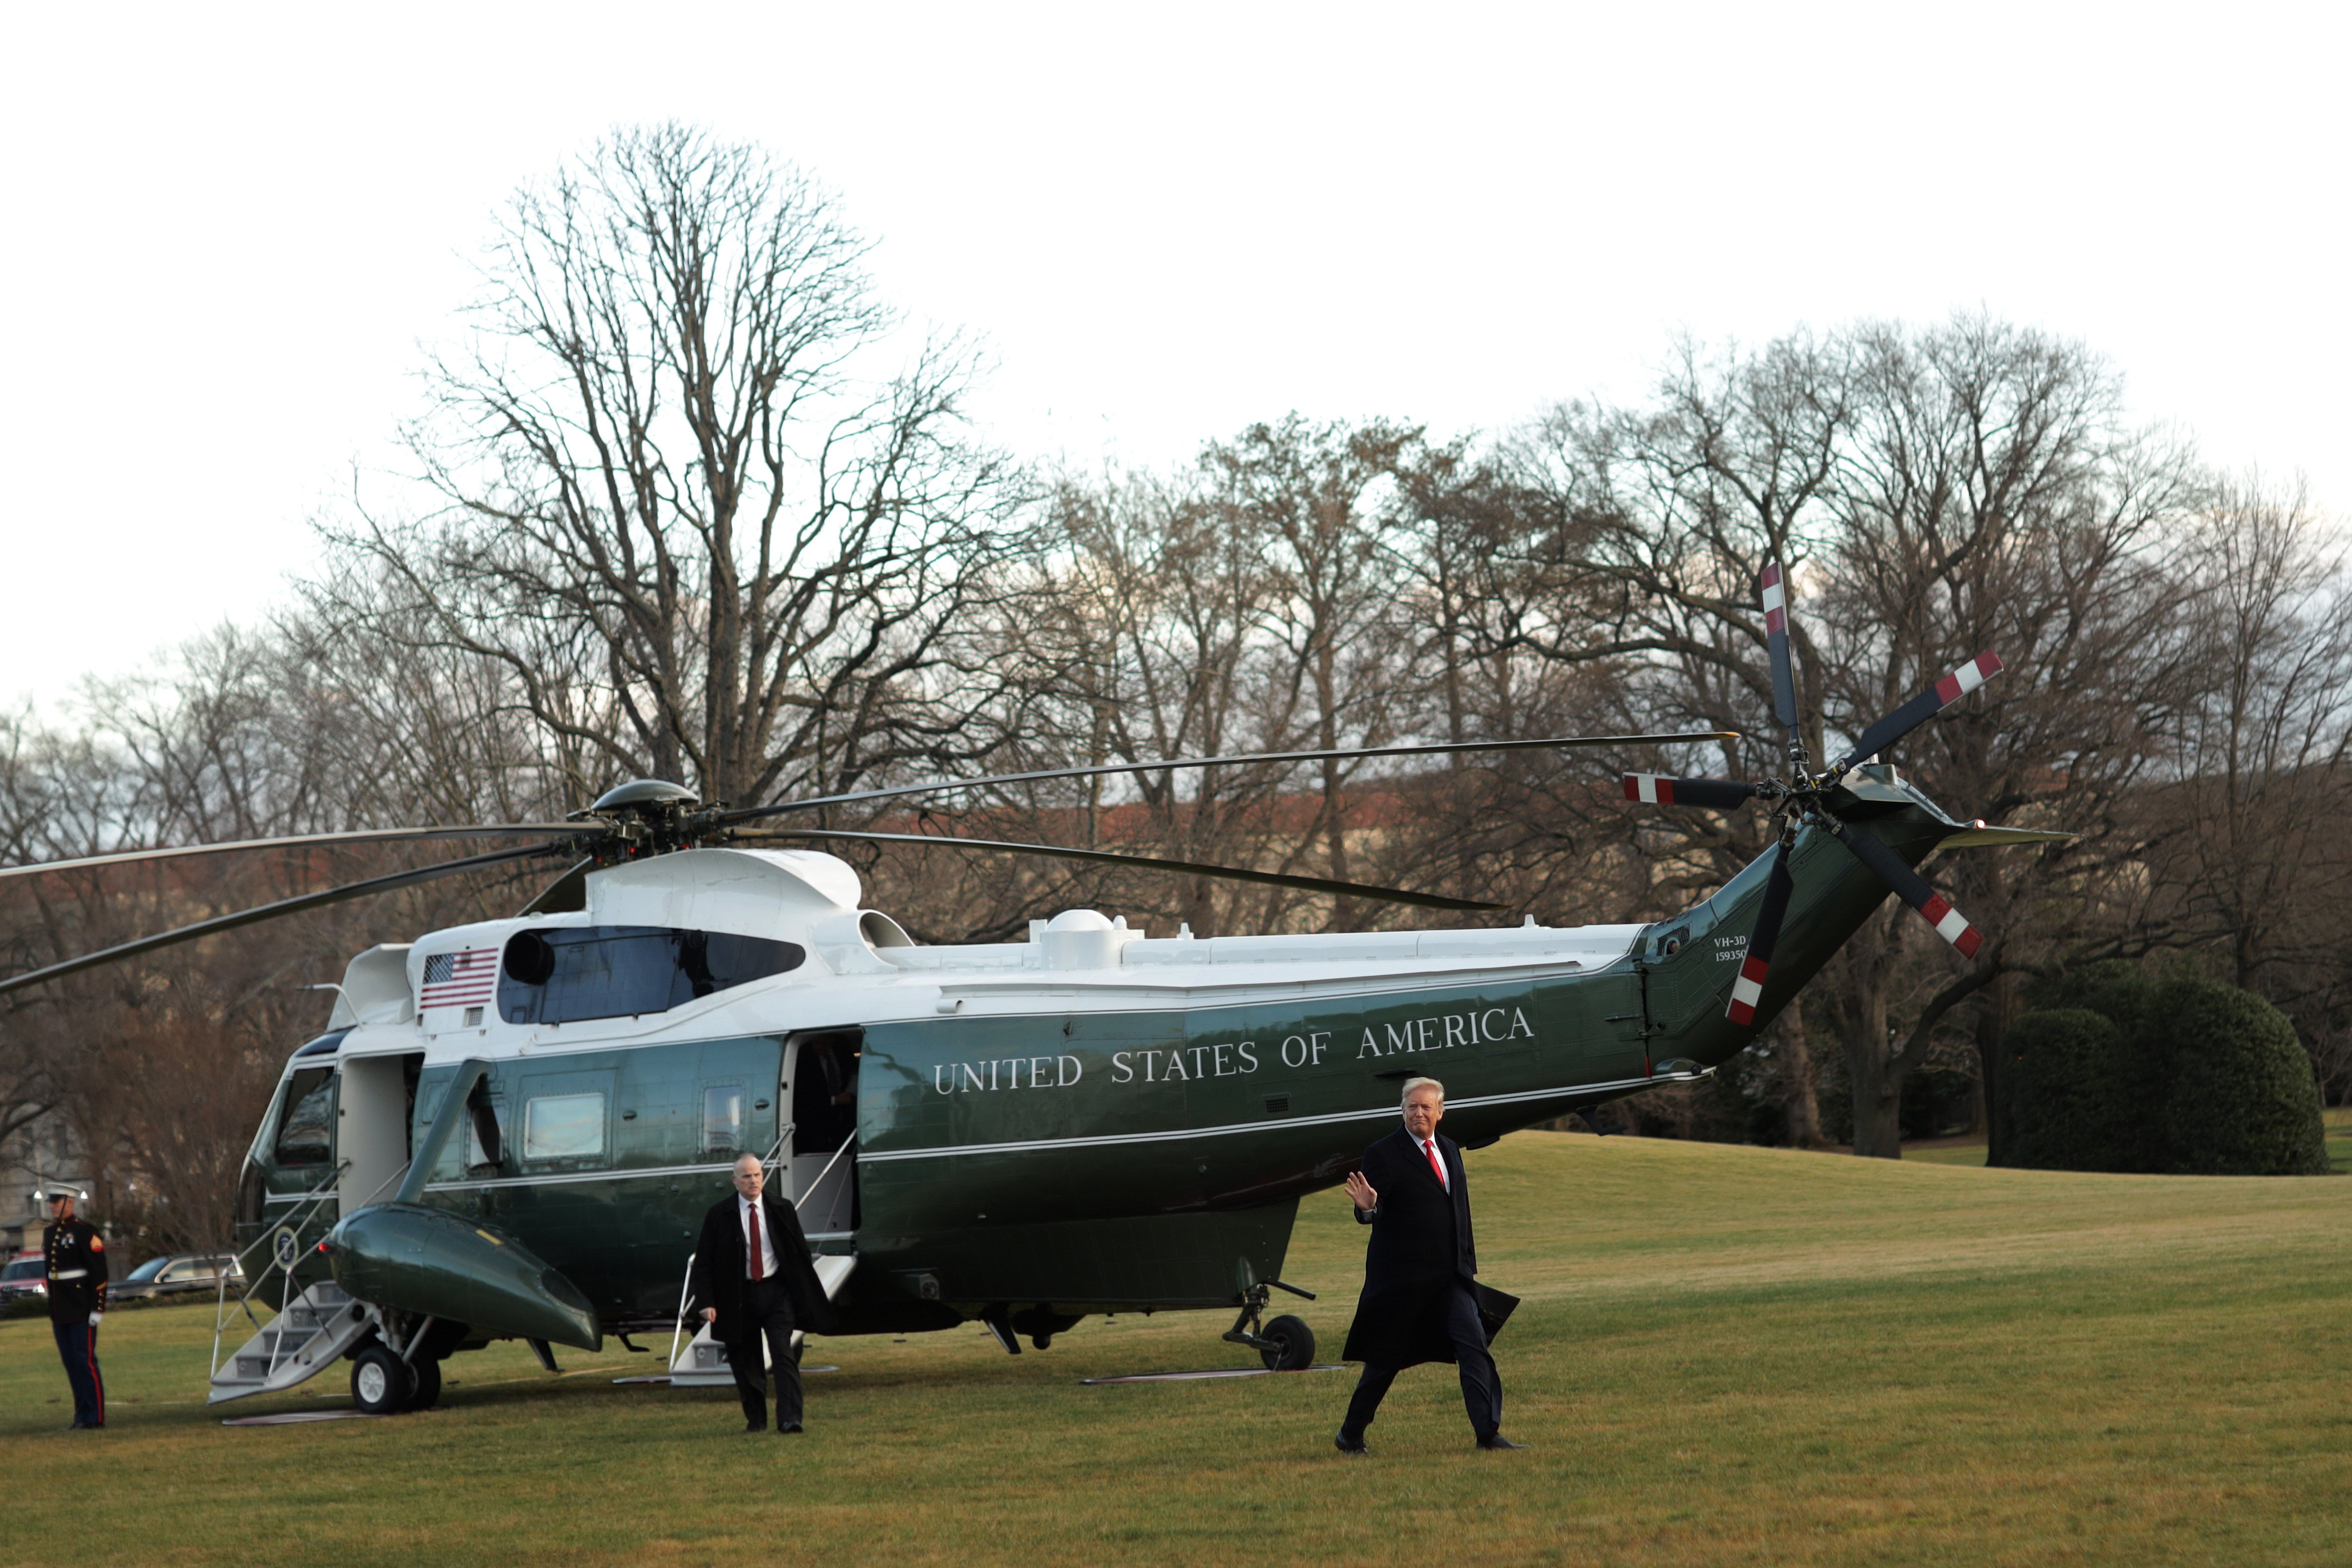 "WASHINGTON, DC - FEBRUARY 07: U.S. President Donald Trump waves as he walks on the South Lawn after he returned to the White House February 7, 2020 in Washington, DC. President Trump has returned from speaking at a ""North Carolina Opportunity Now"" summit in Charlotte, North Carolina. (Photo by Alex Wong/Getty Images)"